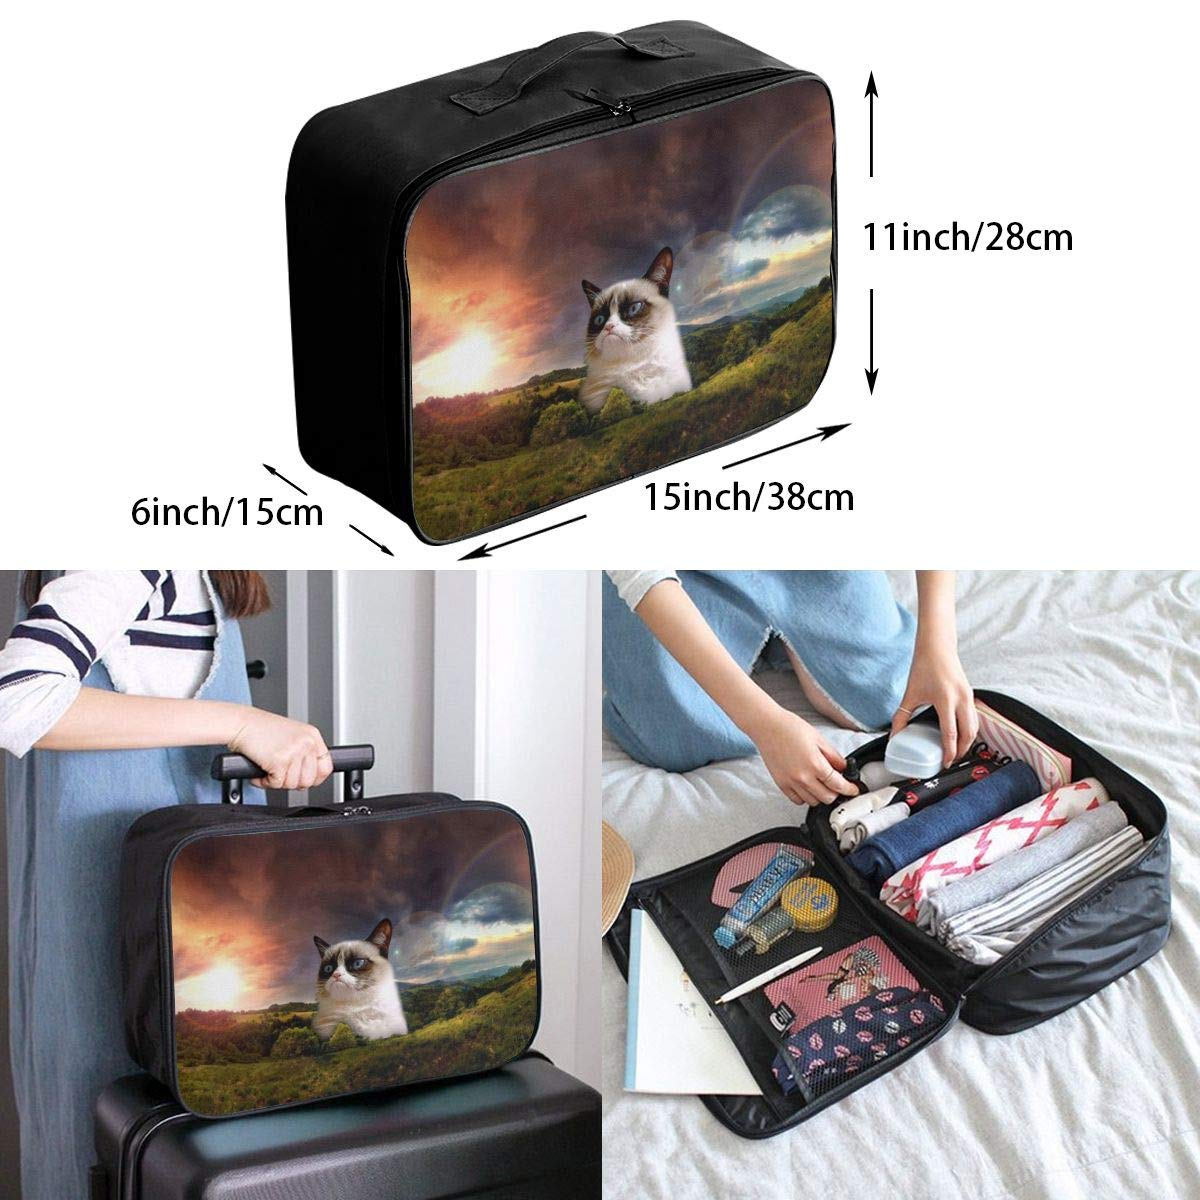 Huge Grumpy Cat In Mountain Travel Lightweight Waterproof Foldable Storage Carry Luggage Duffle Tote Bag Large Capacity In Trolley Handle Bags 6x11x15 Inch